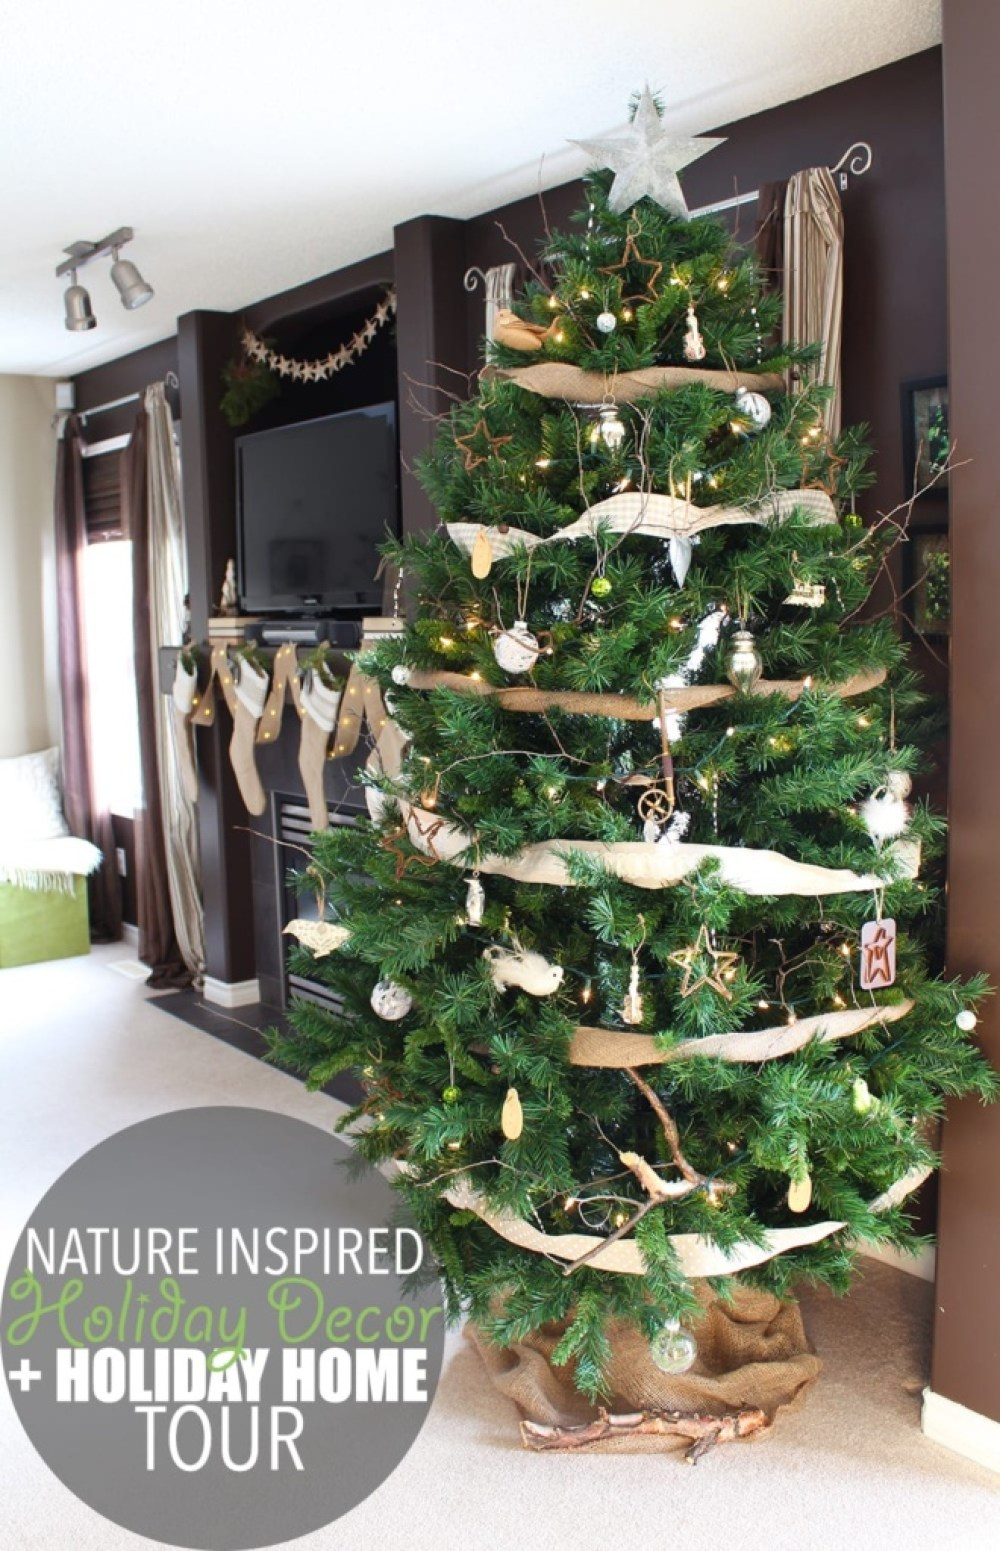 Nature inspired holiday decor is an eco-friendly way to create a feeling of calm beauty in your home. It's like walking through the woods on a winter day!